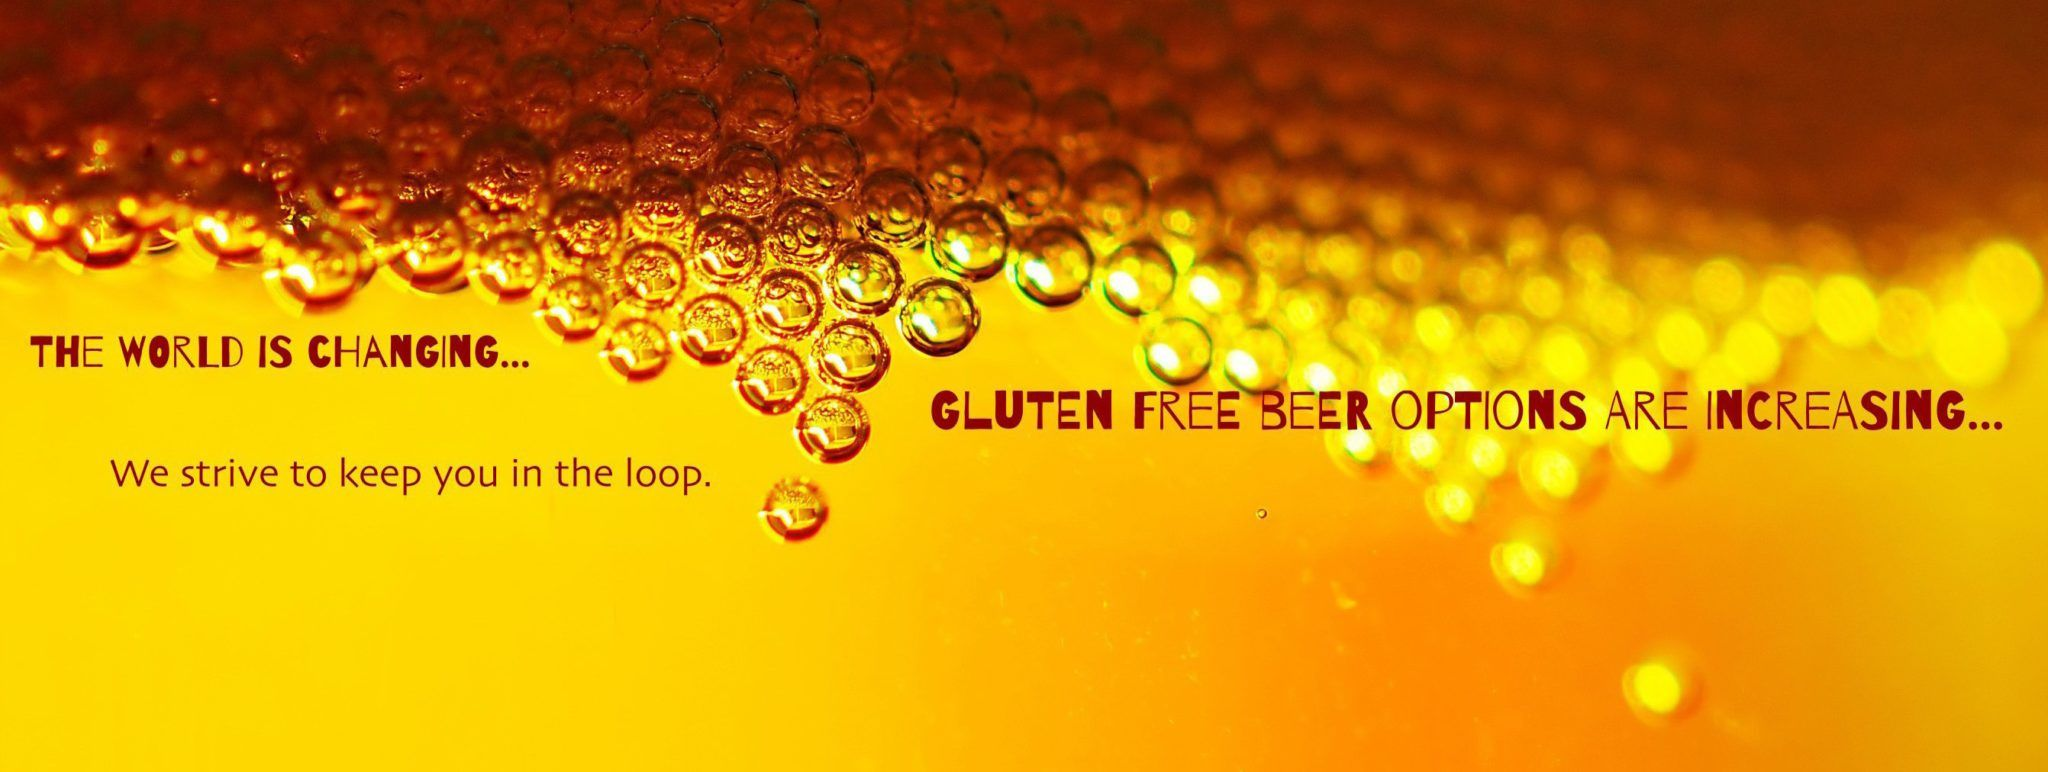 best gluten free beers reviews gluten free beer brands 2016